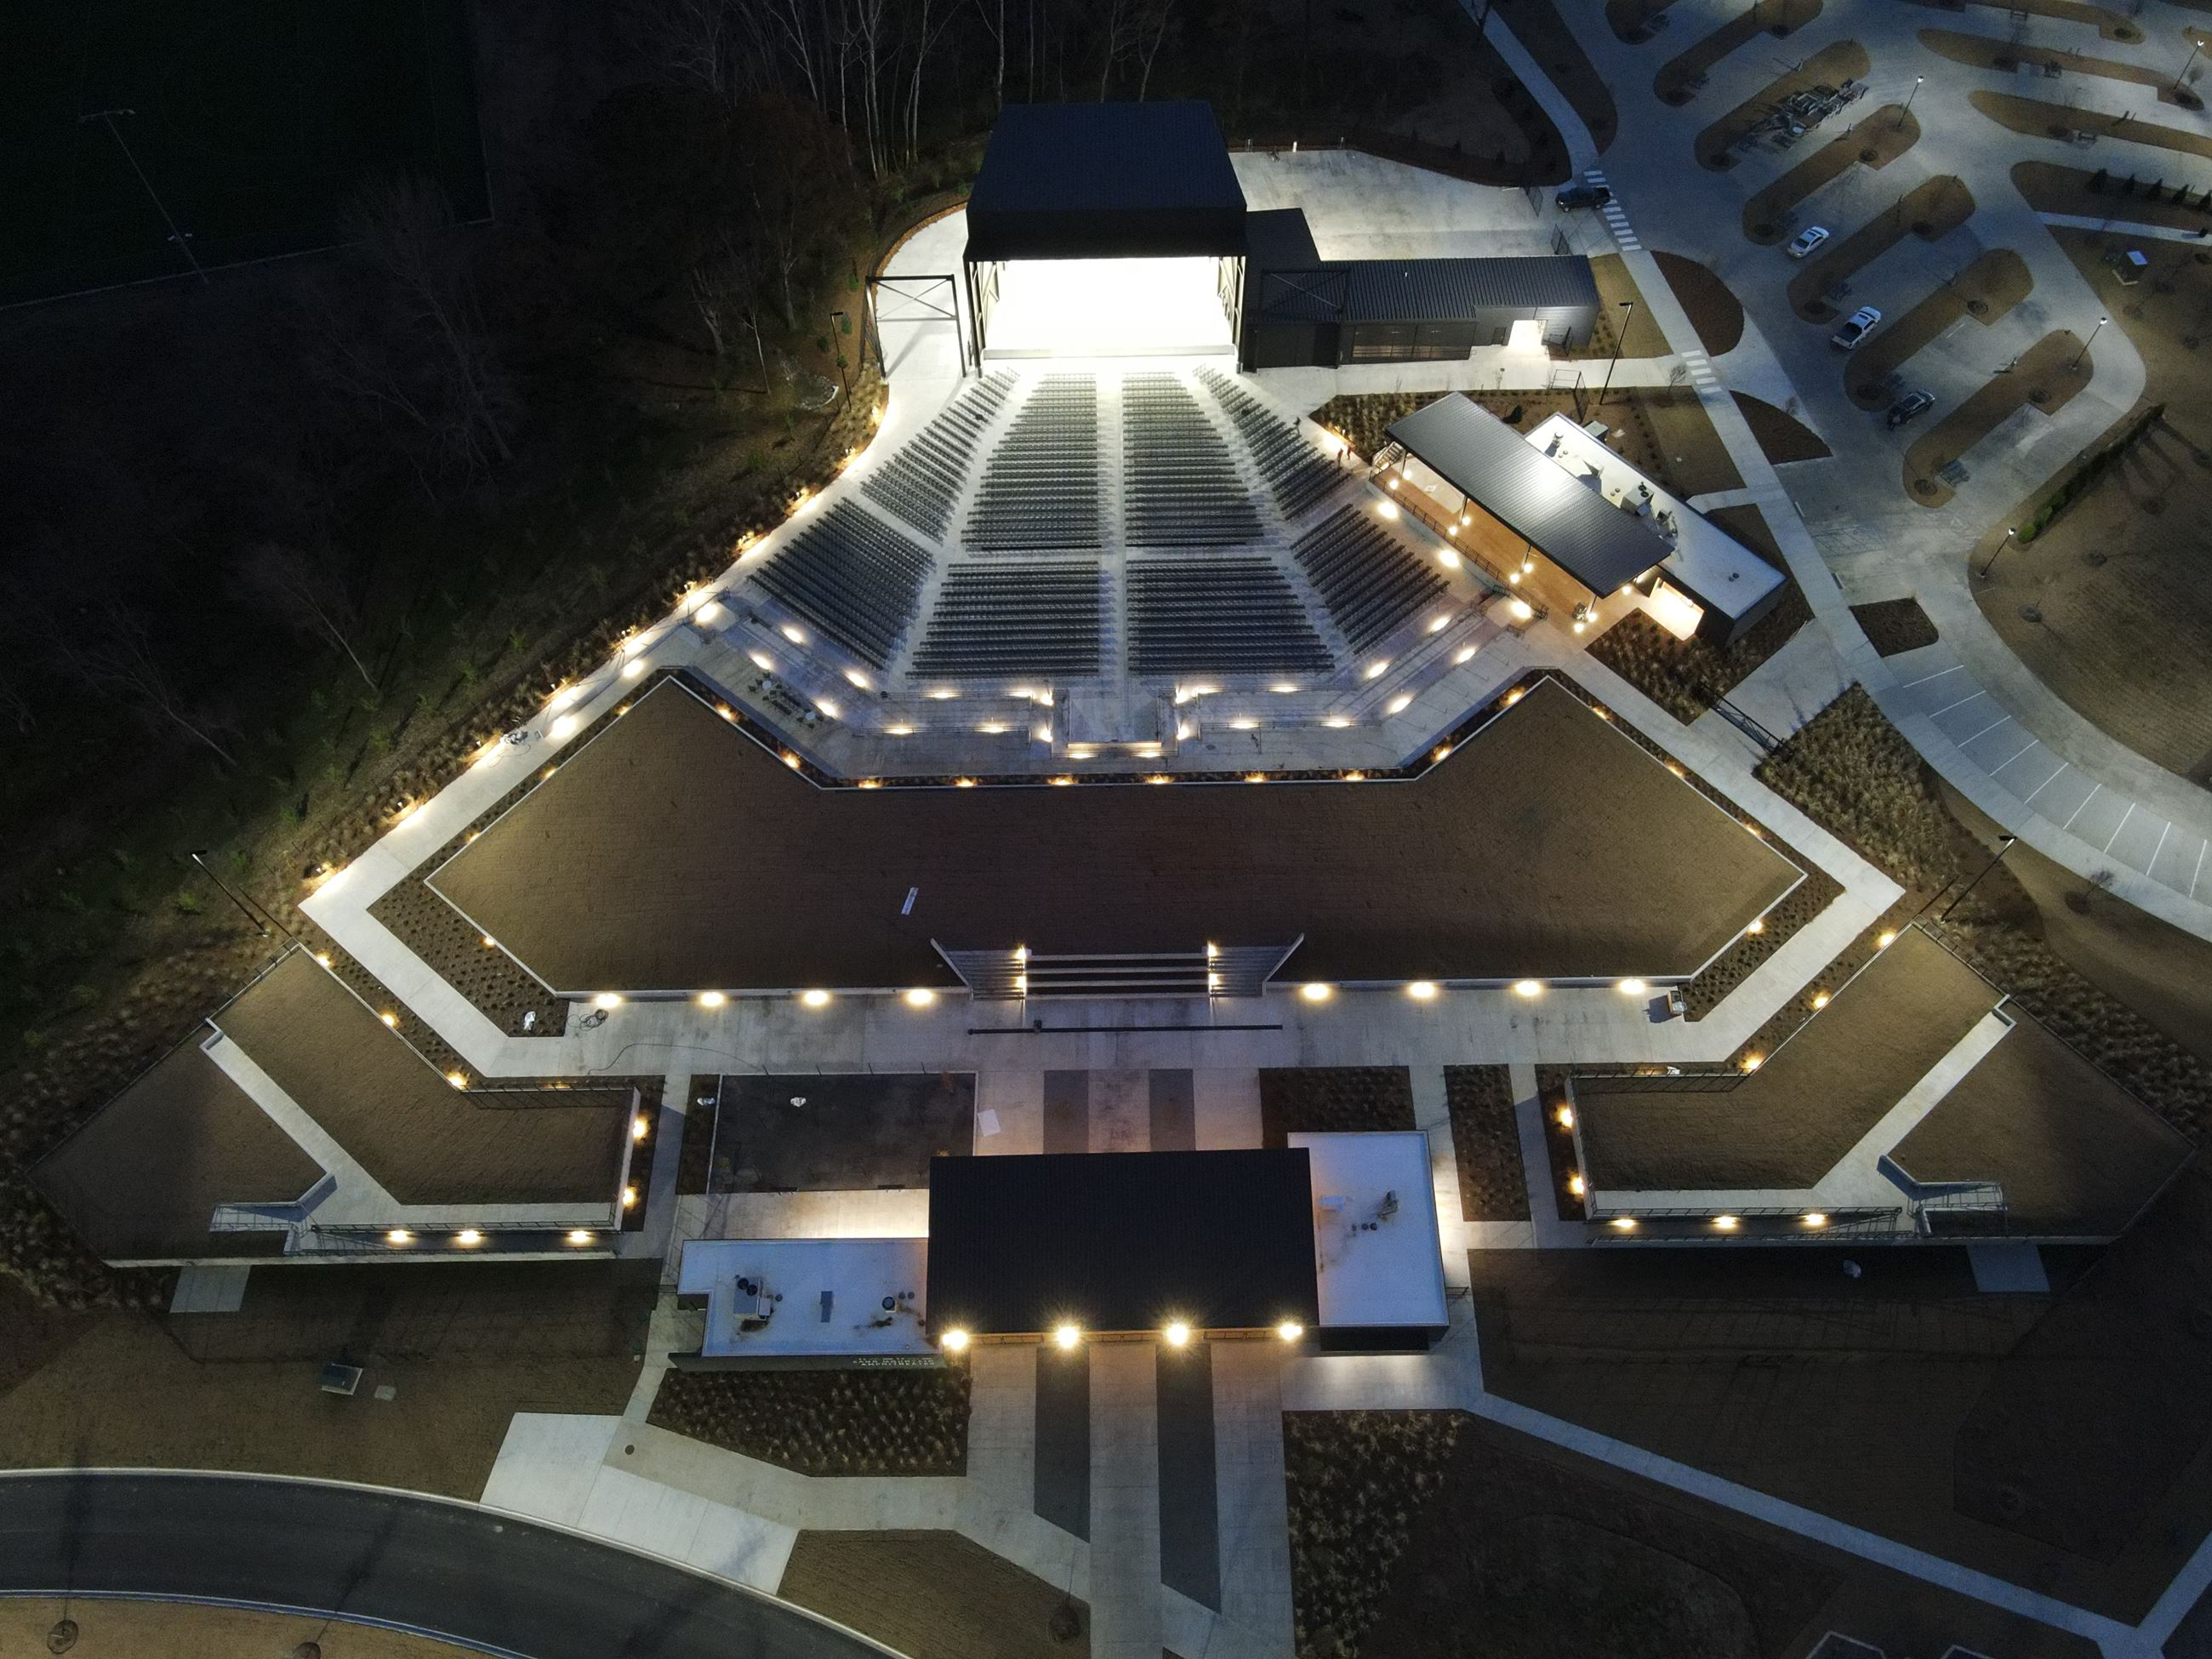 Aerial photo of amphitheater in Albertville, AL